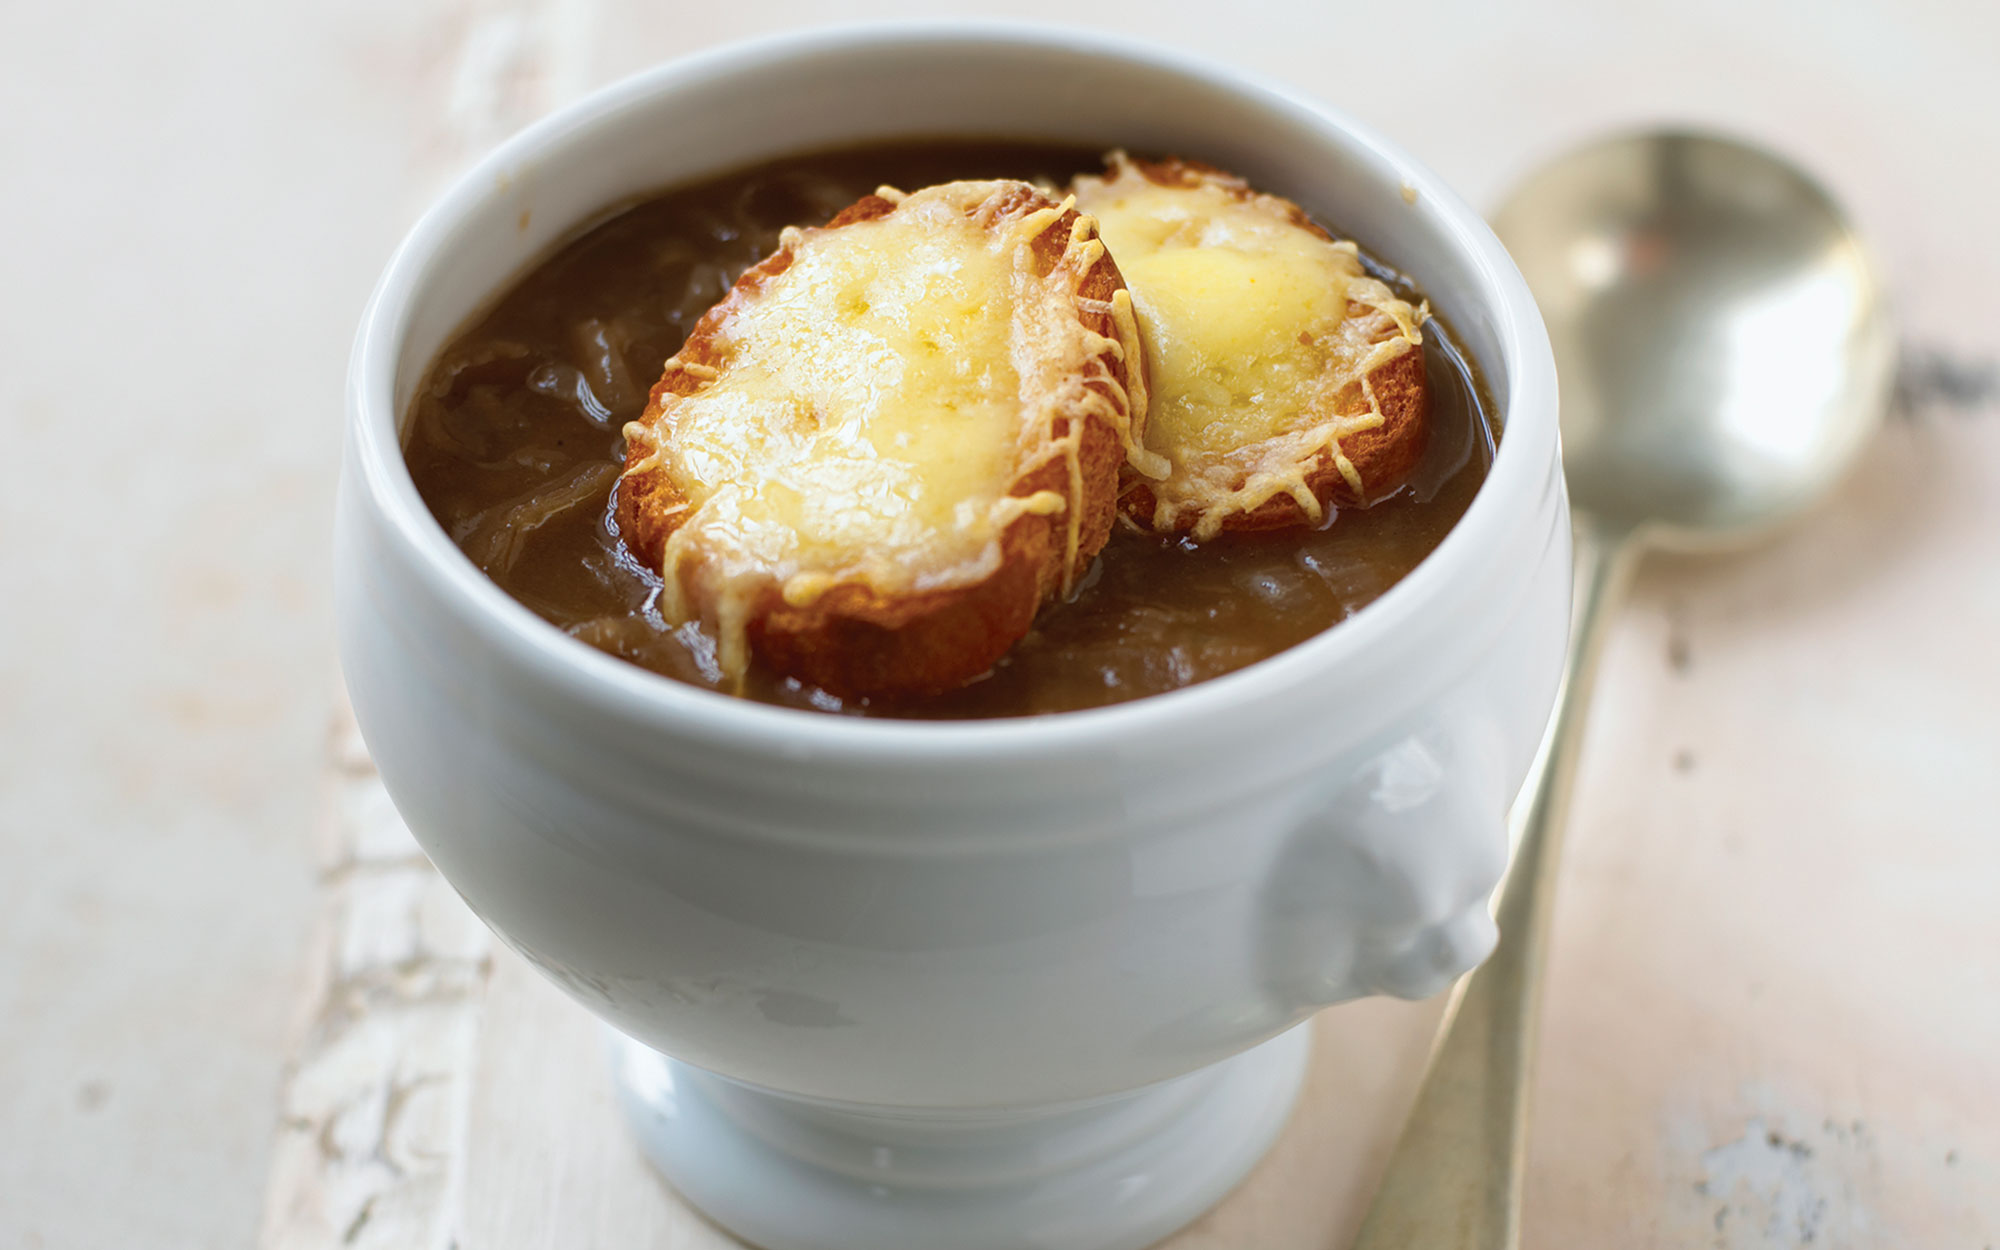 French onion soup served in bowl topped with toasted bread and melted grated cheese, close-up